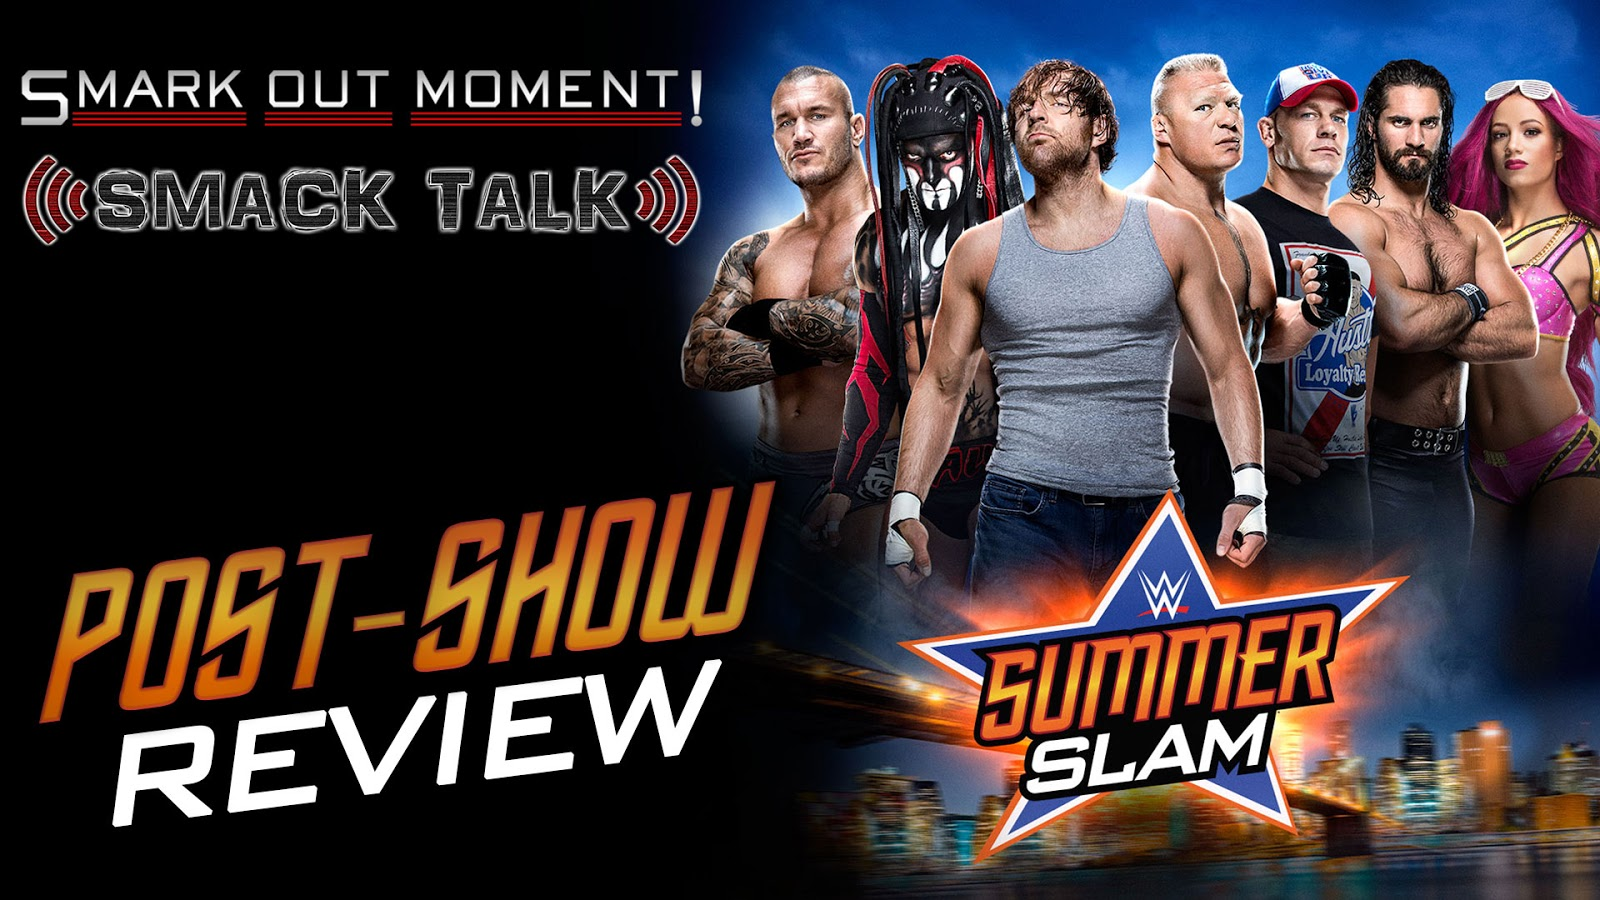 WWE SummerSlam 2016 Recap and Review Podcast